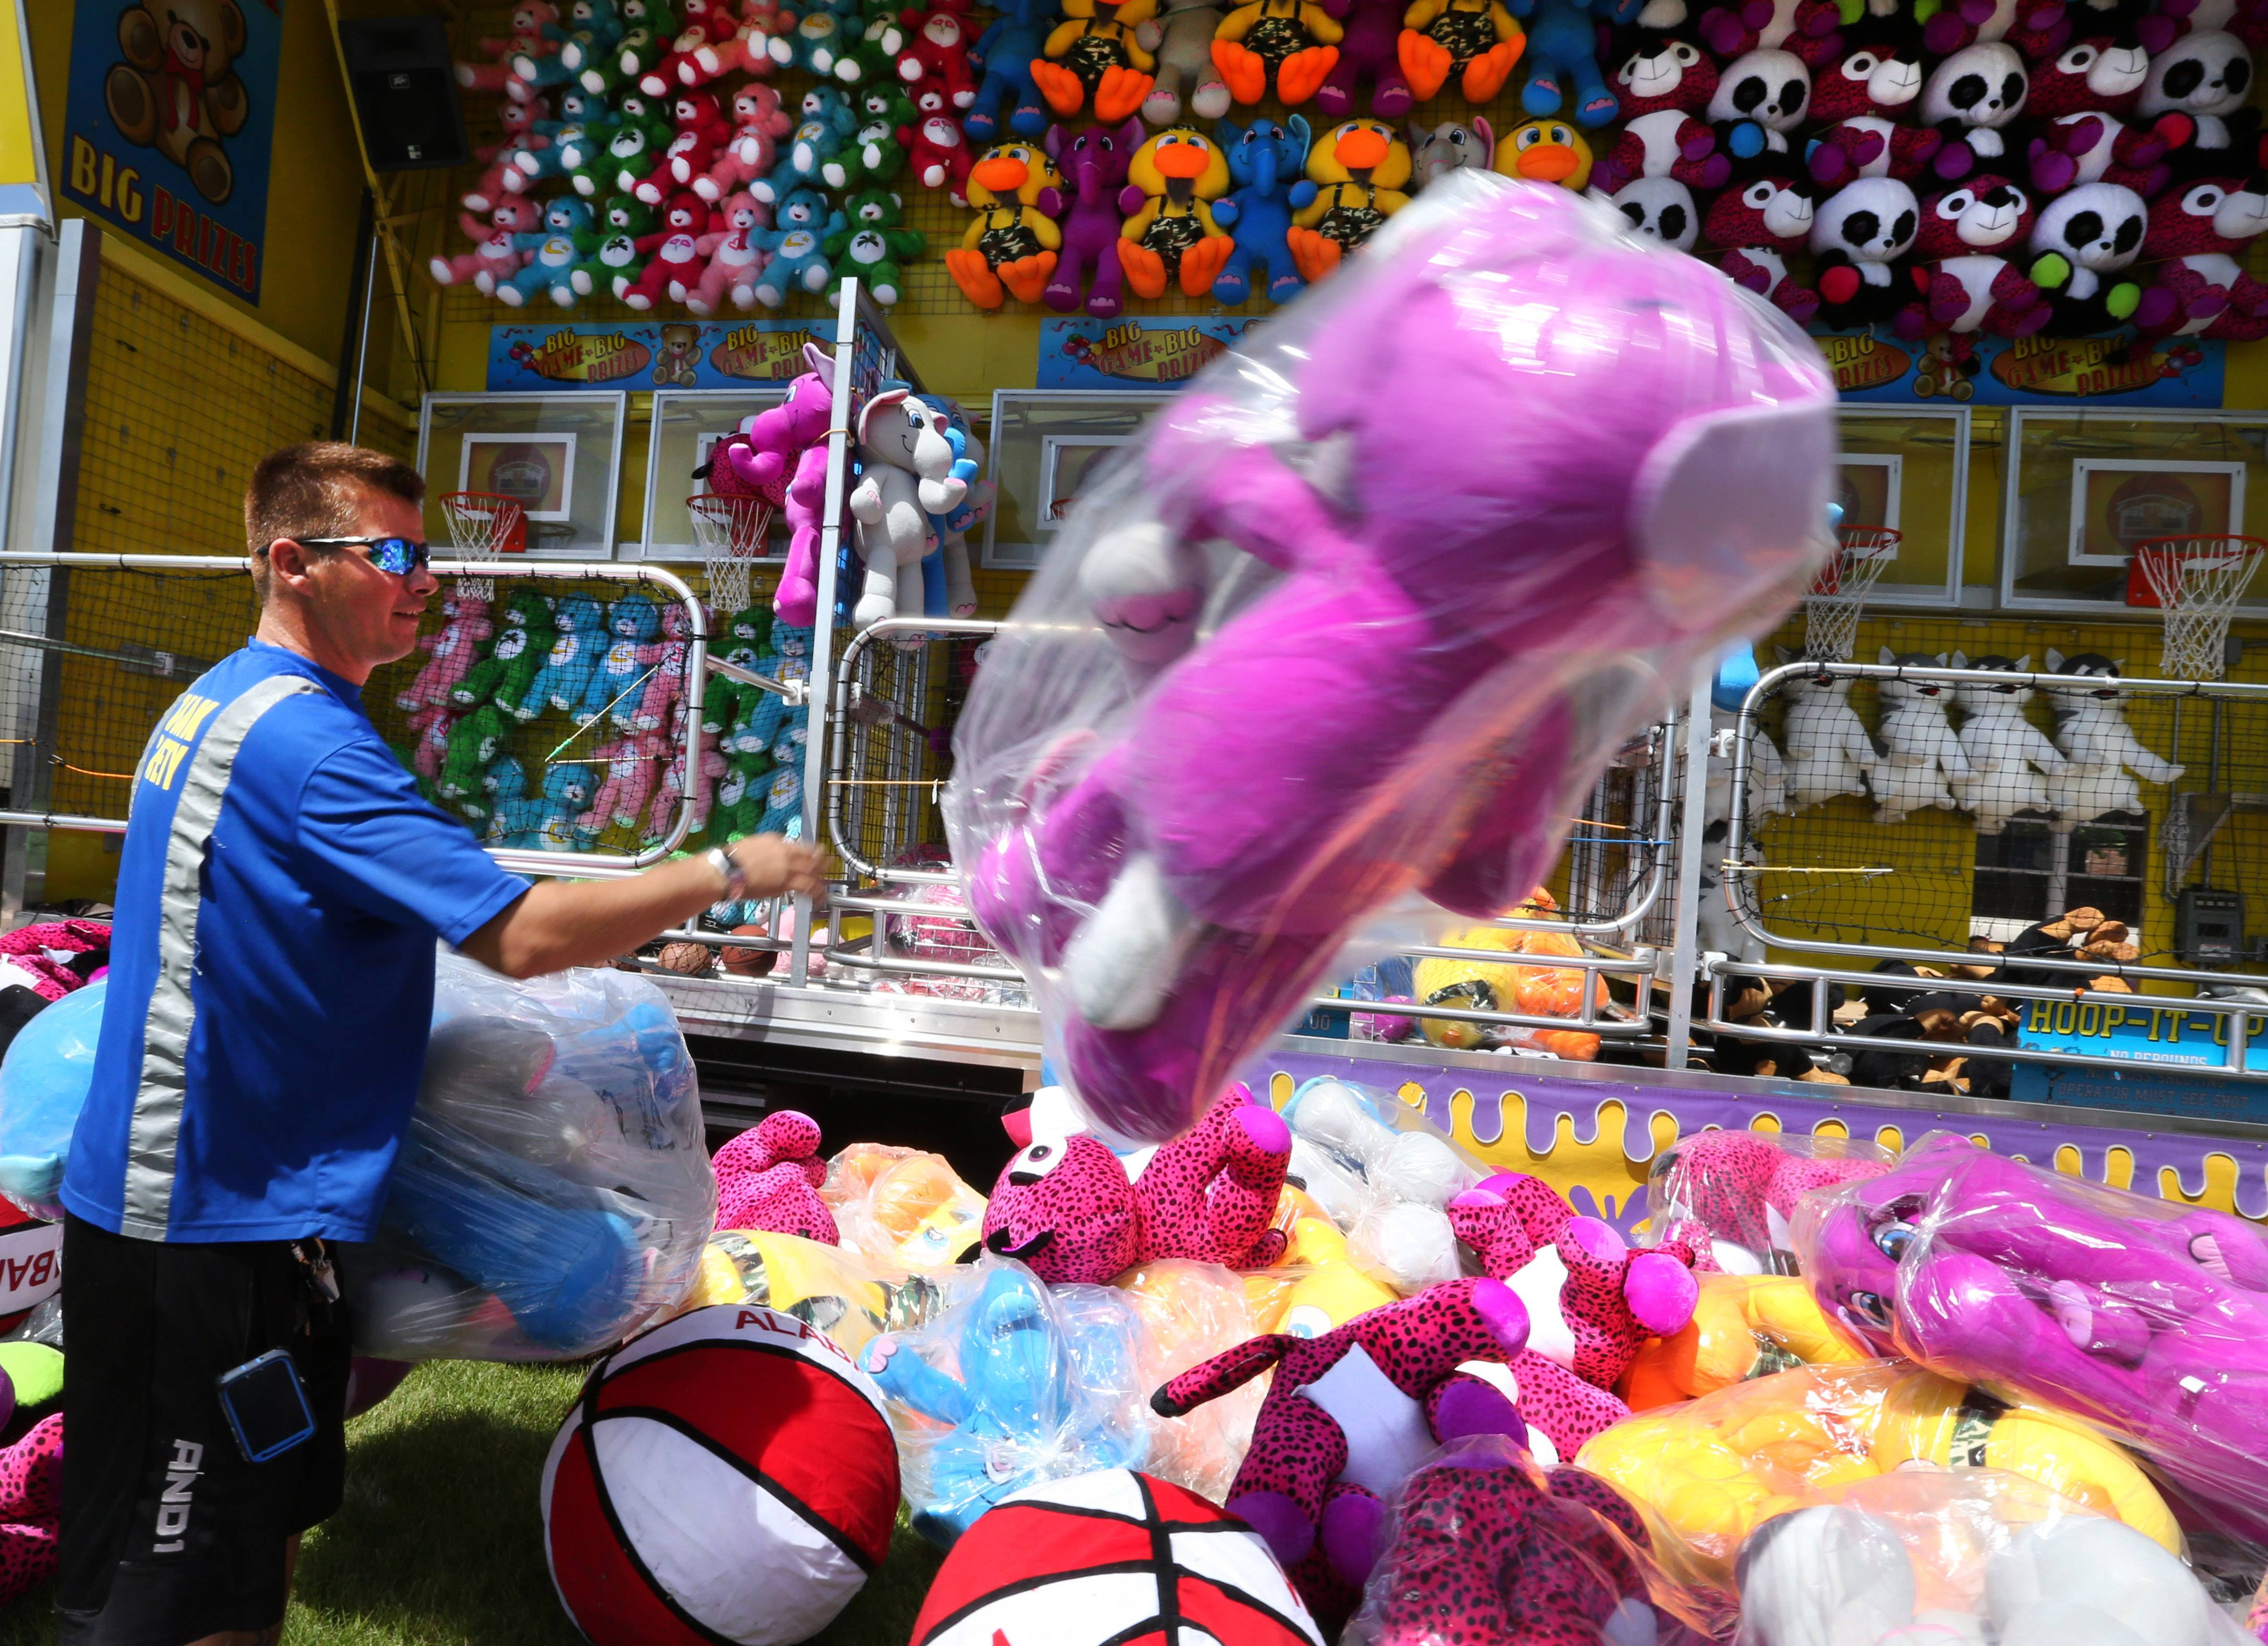 Daniel Mason, a carnival worker from Indiana, arranges his display of prizes outside the basketball game.